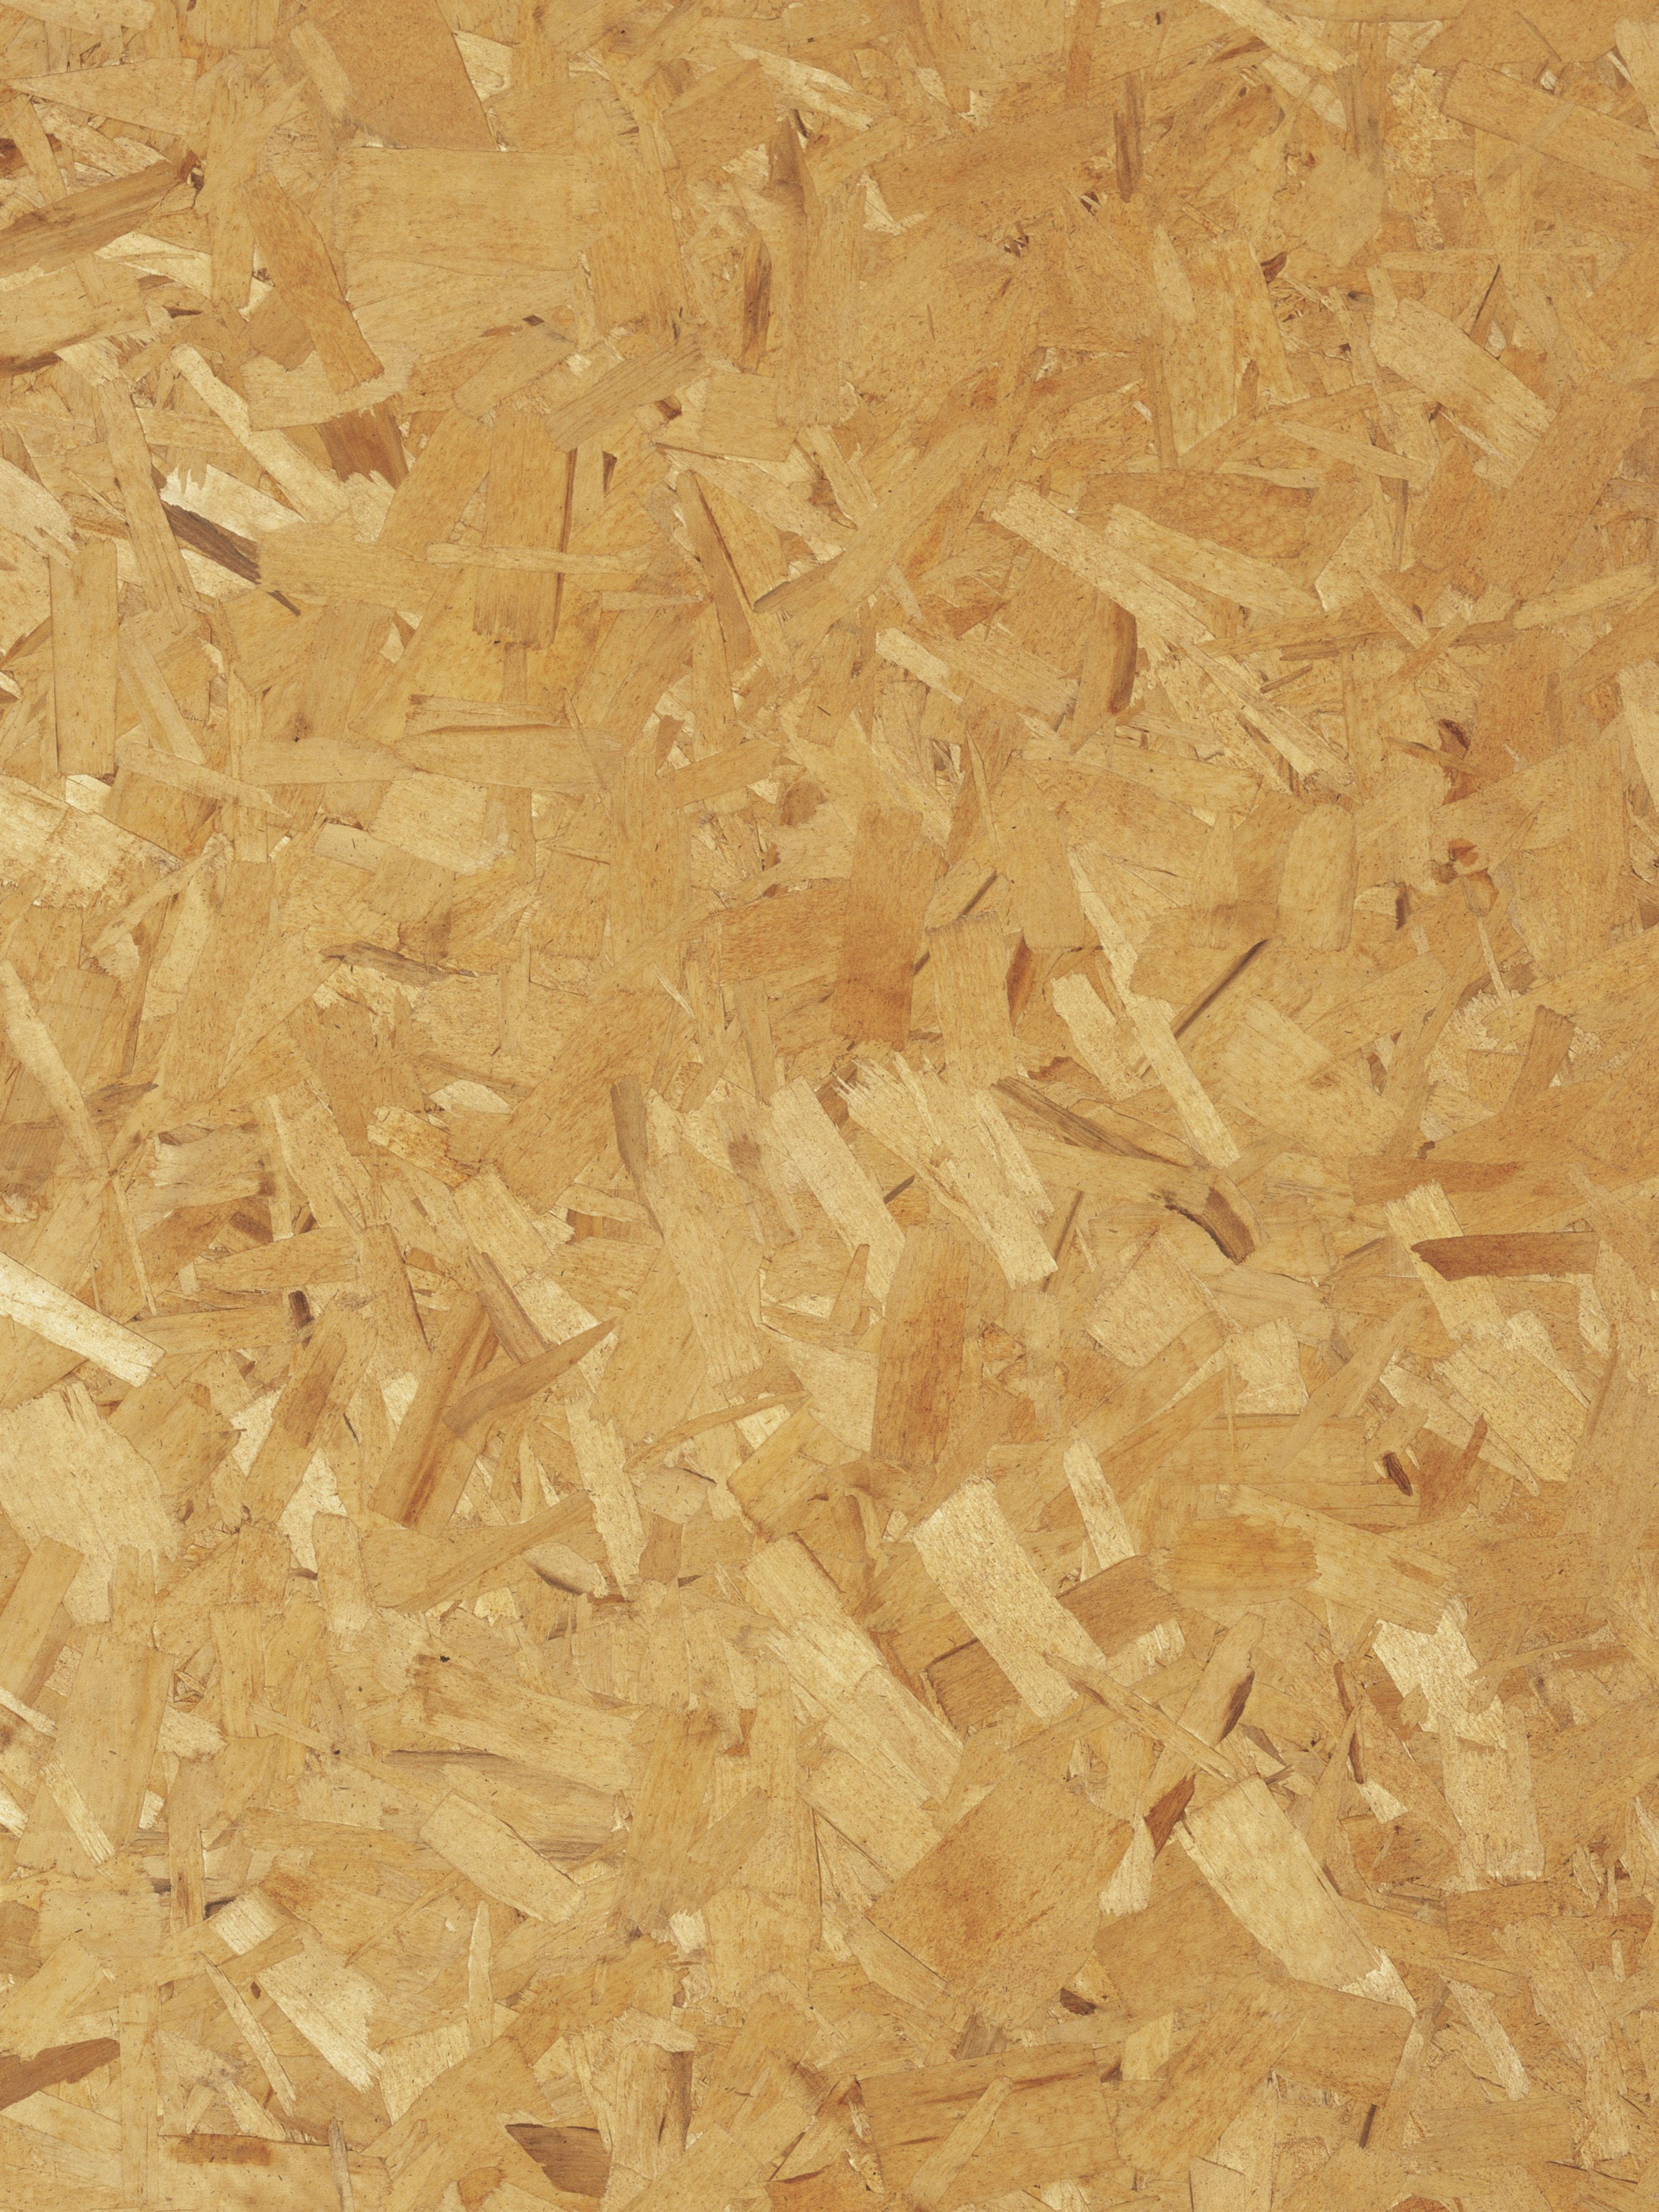 How To Cover A Chipboard Wall Hunker Painted Plywood Floors Particle Board Floor Flooring